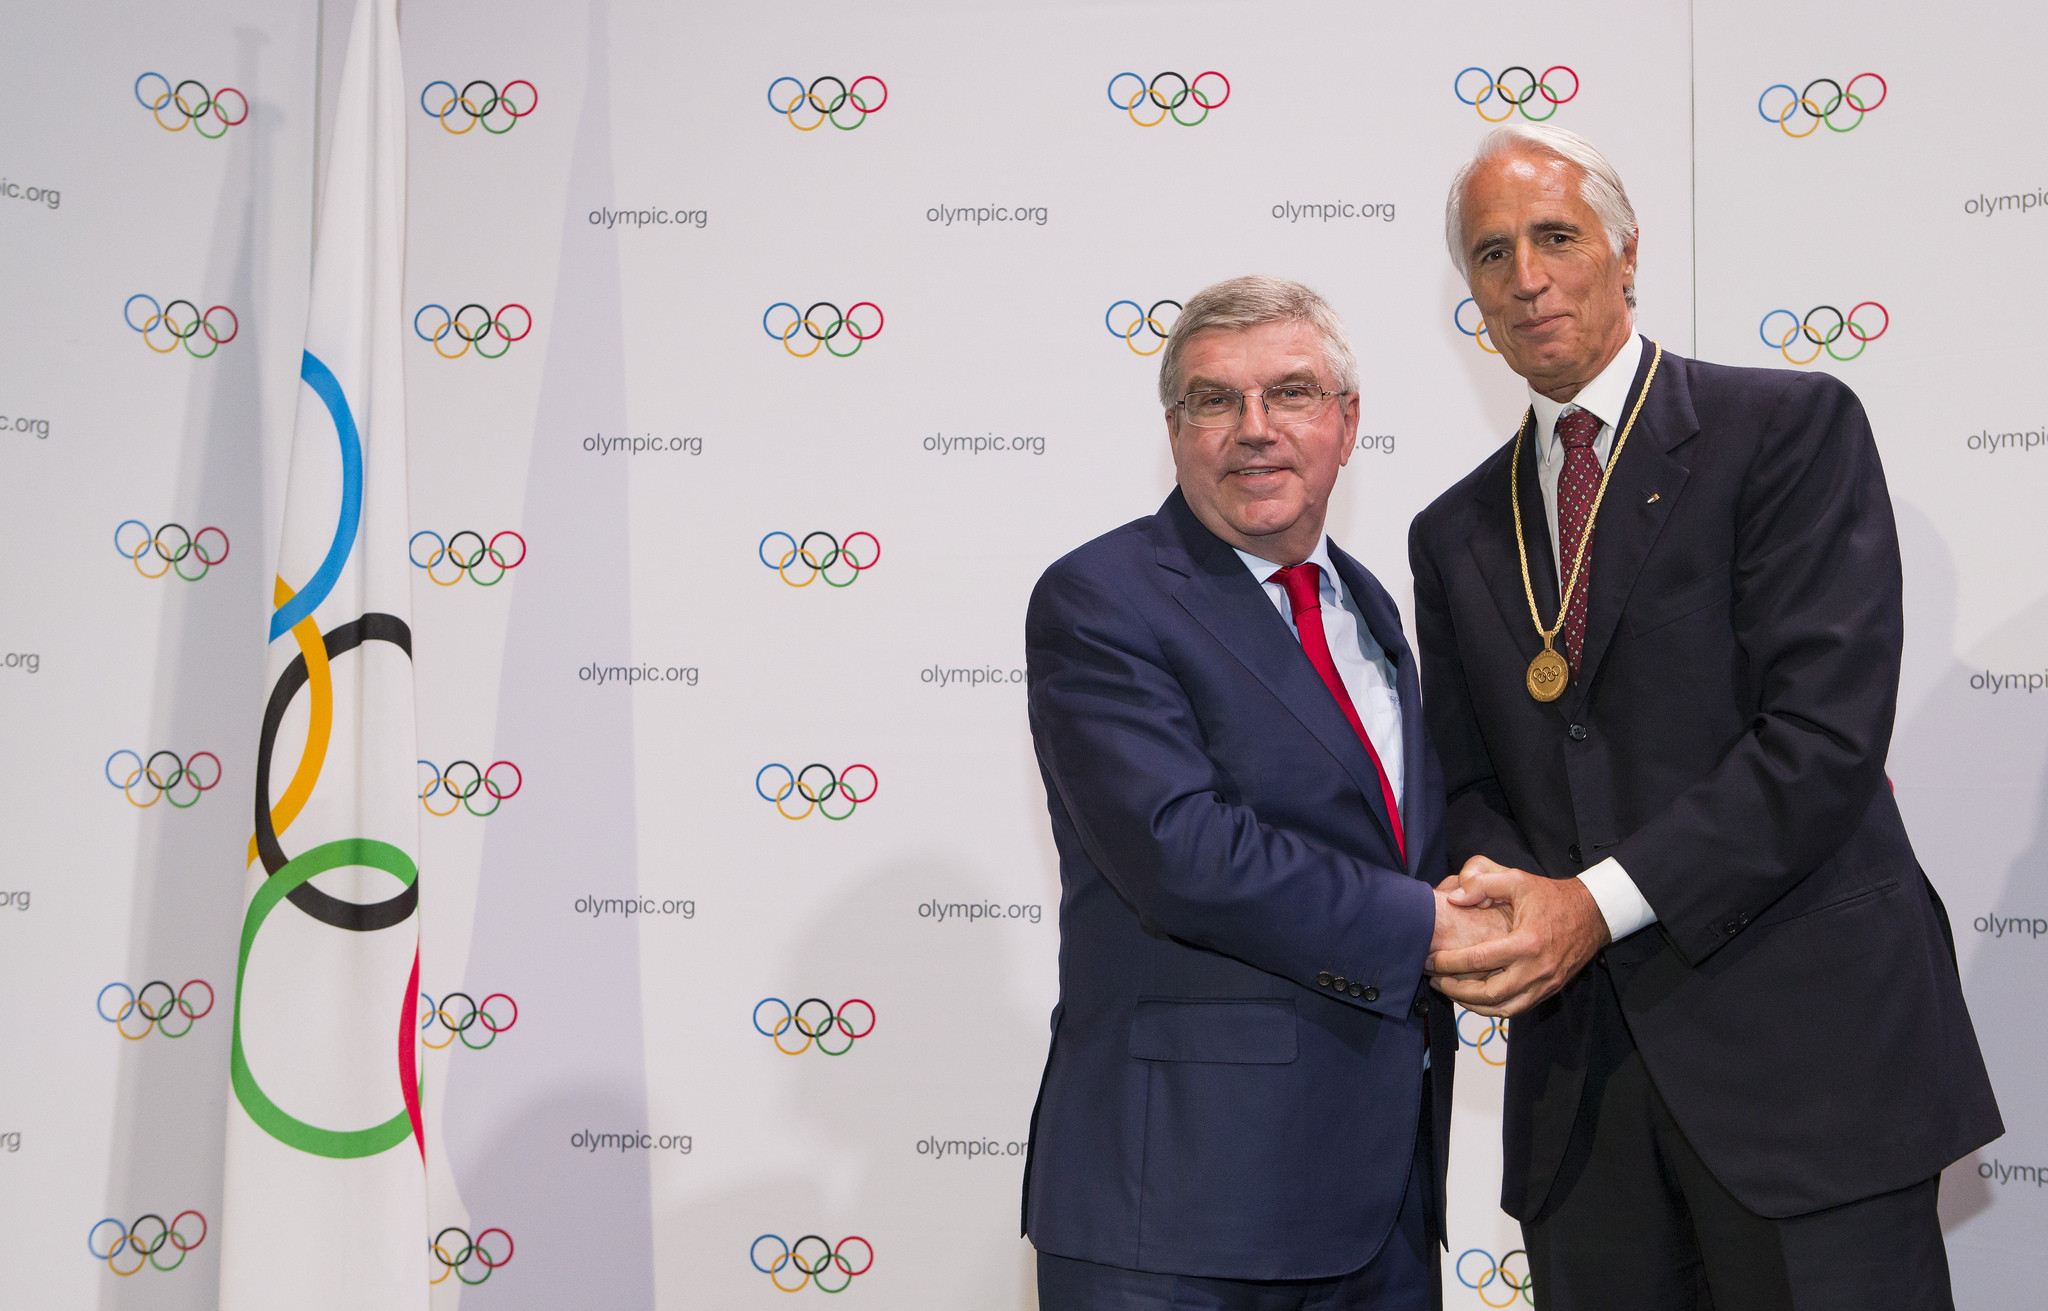 Milan-Cortina d'Ampezzo was approved as a candidate for the Games on the same day Italian National Olympic Committee head Giovanni Malagò was made an IOC member ©IOC